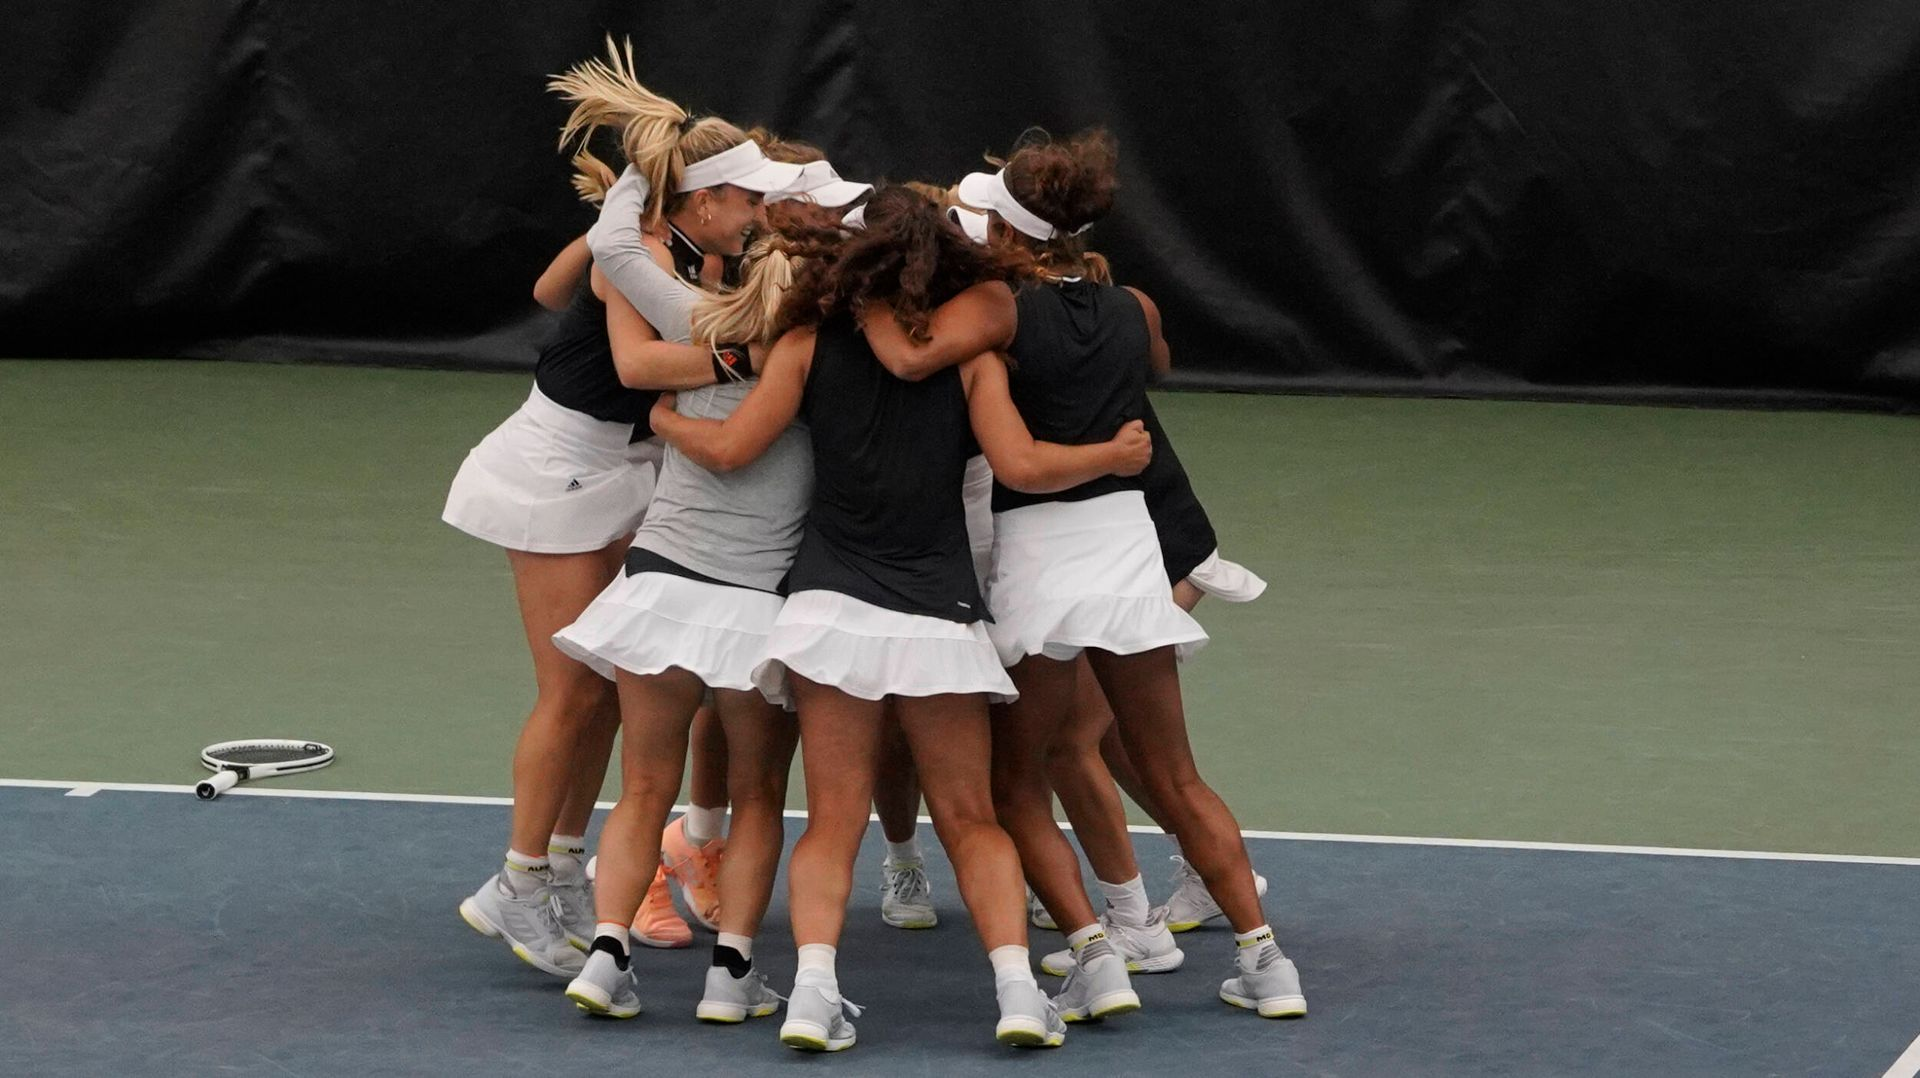 W. Tennis Rolls to 4-1 Win over Second-Seeded Florida State